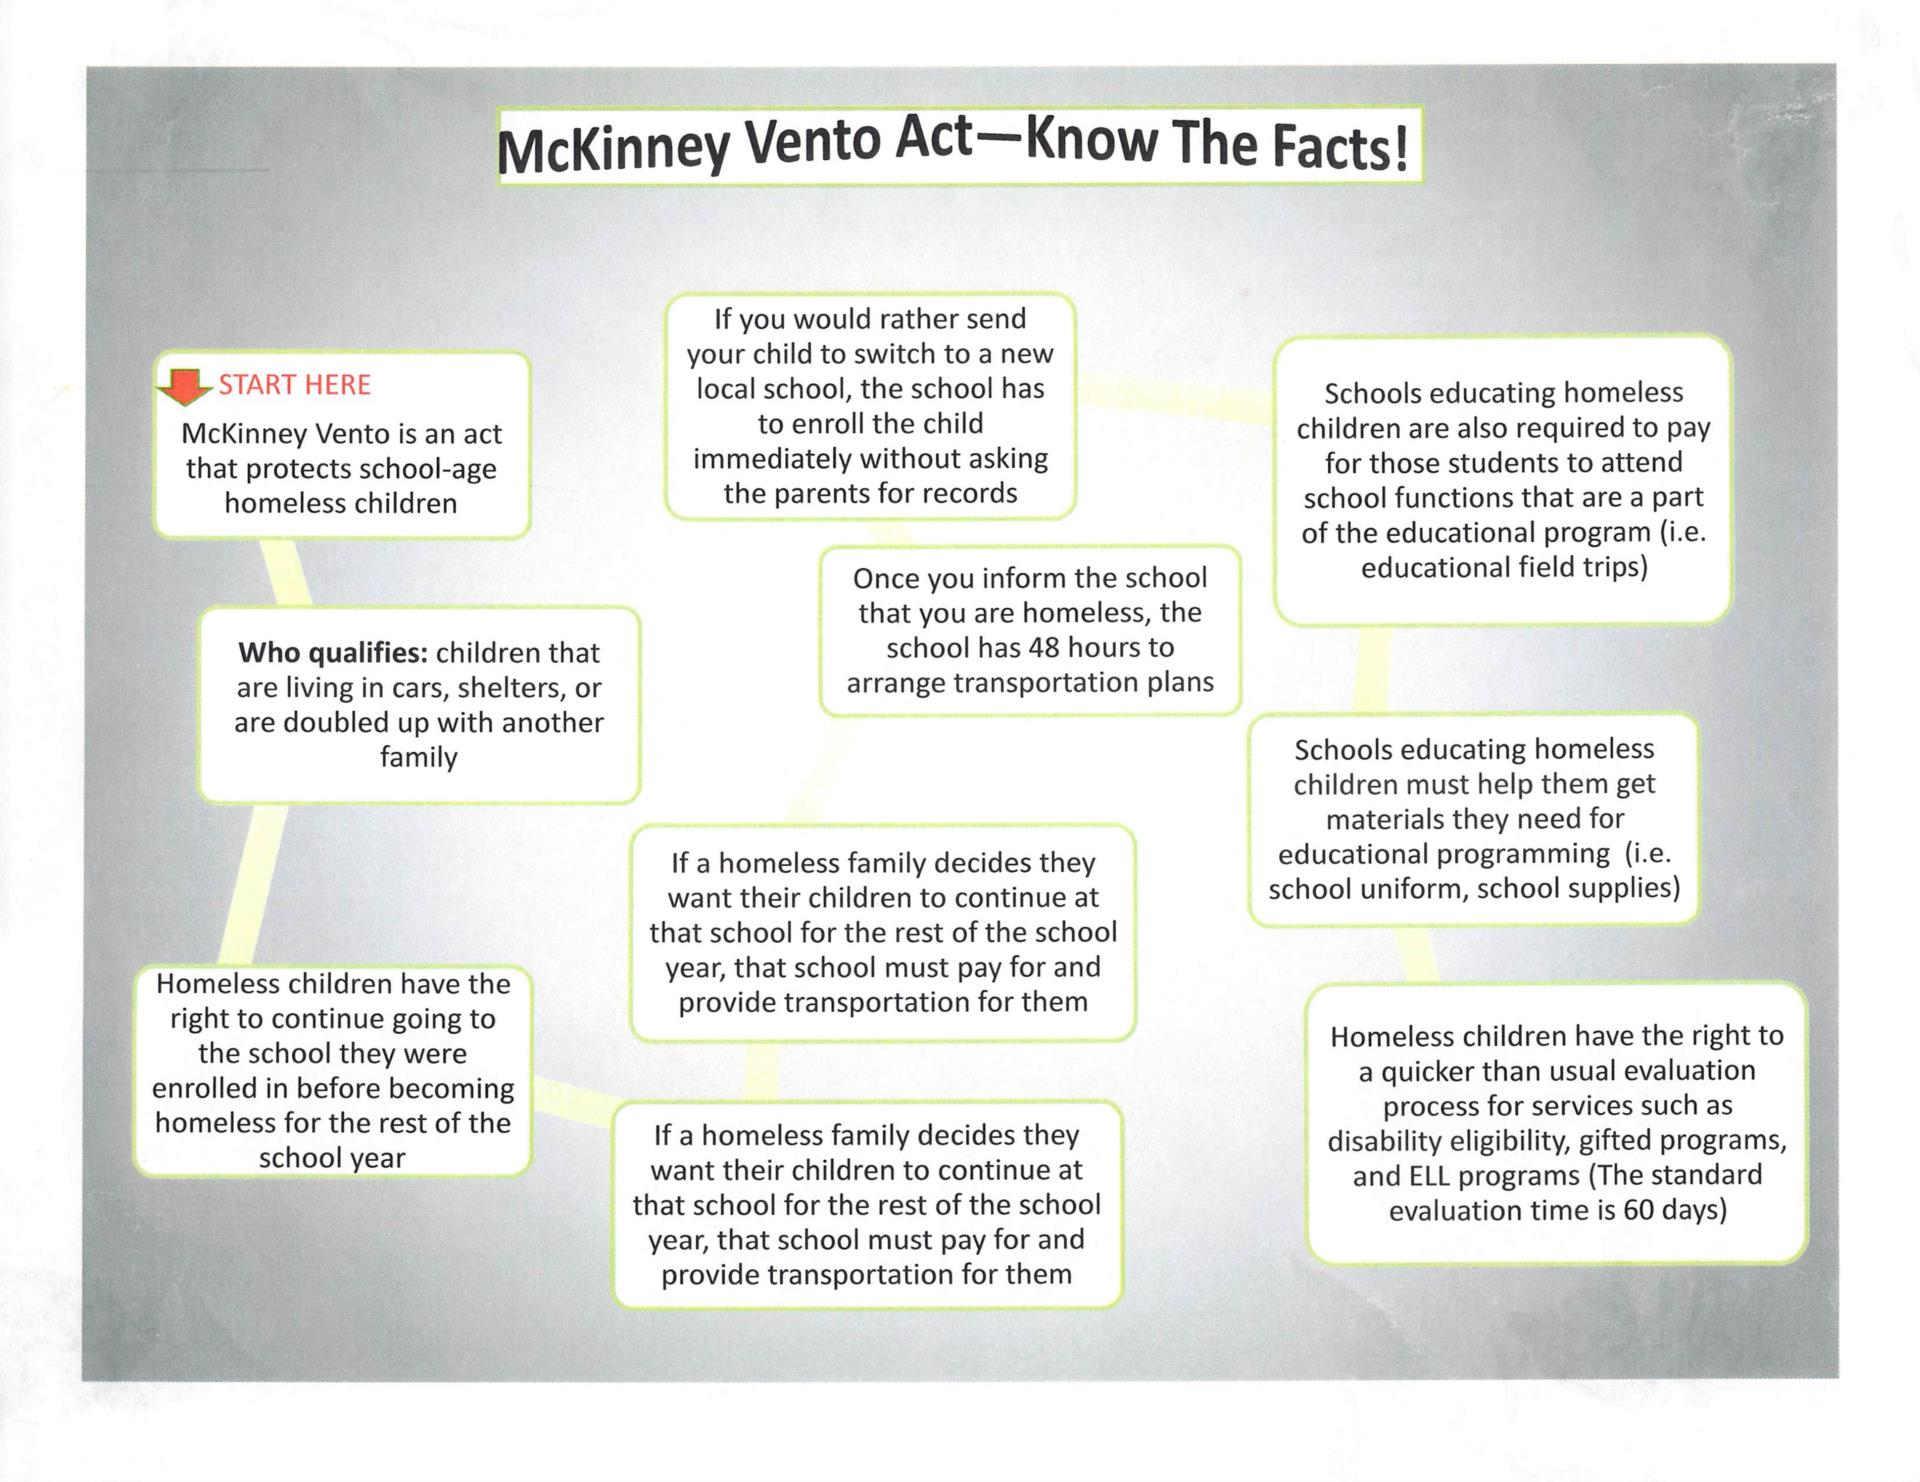 McKinney Vento know the facts sheet